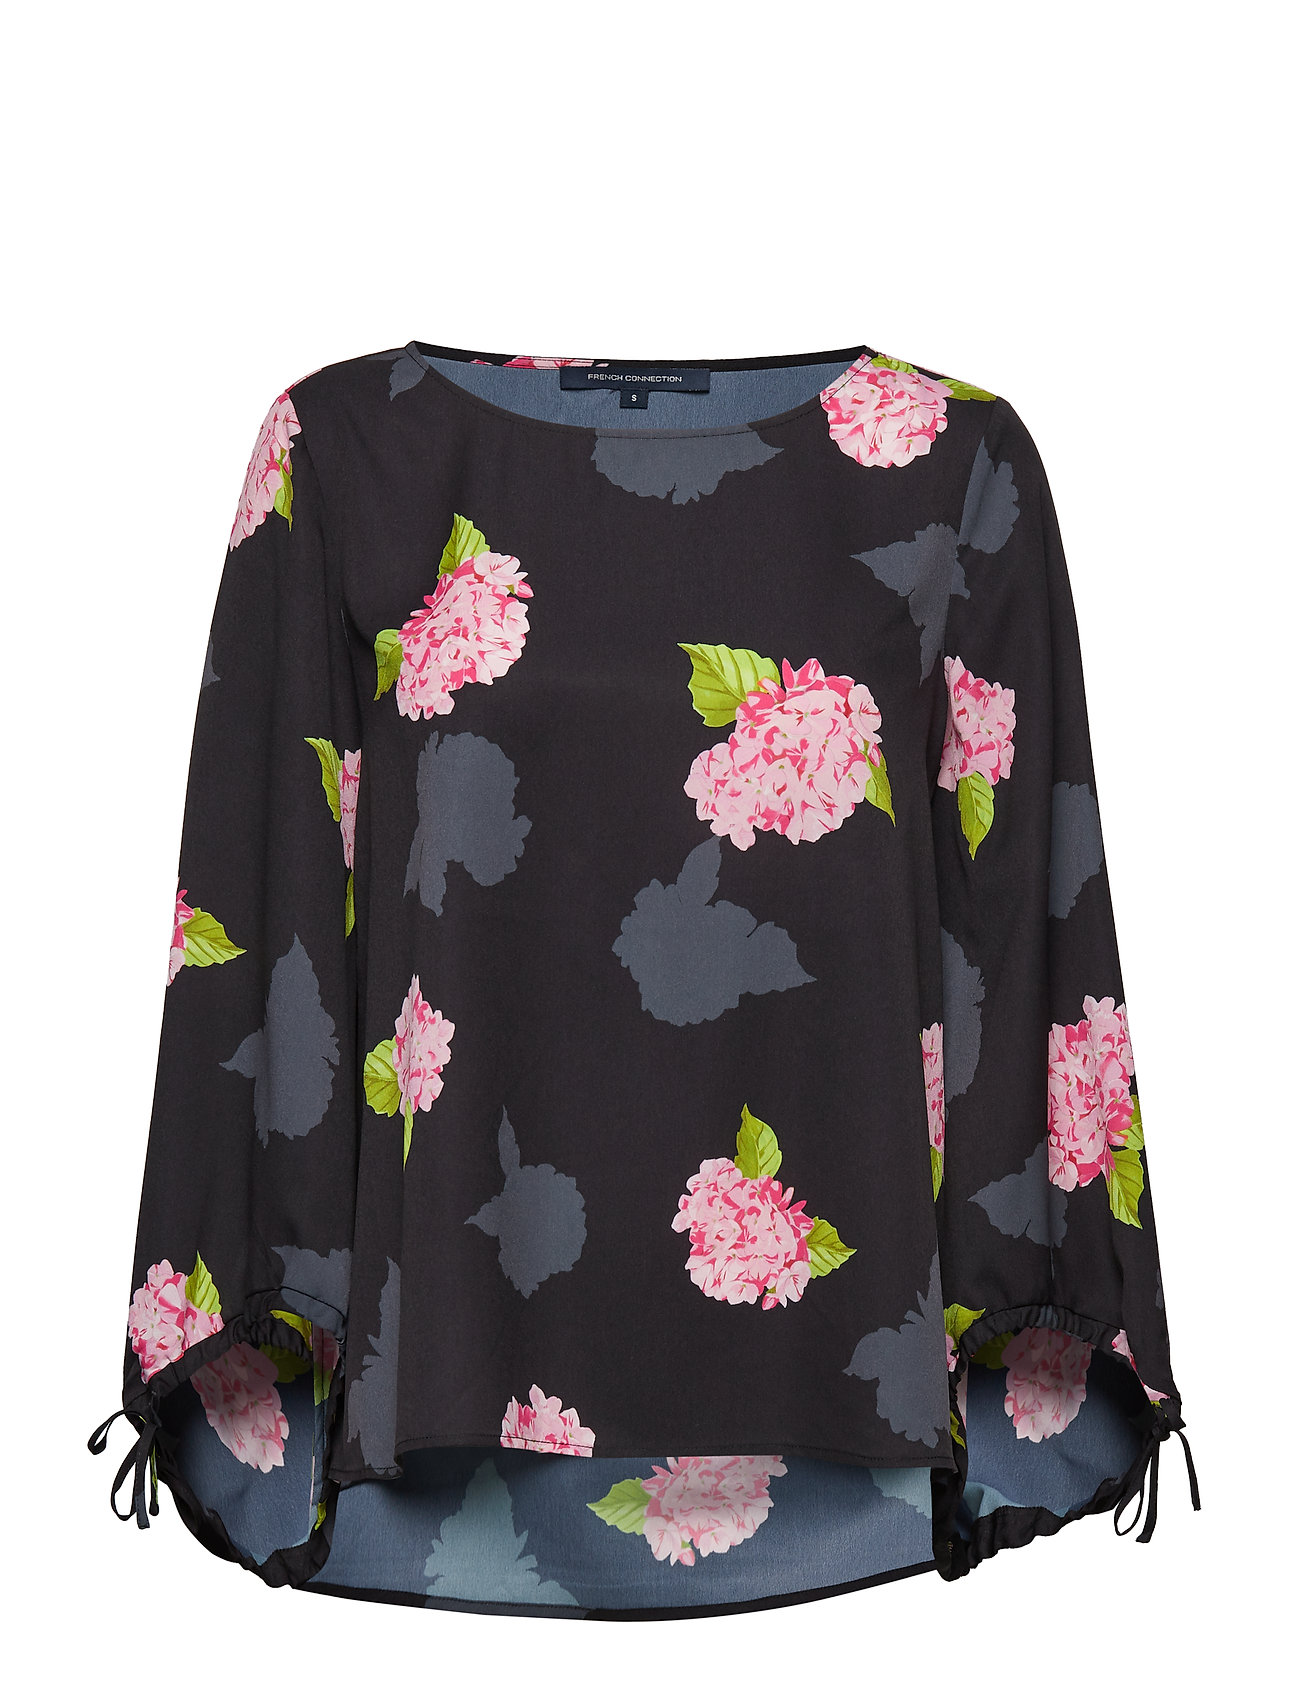 French Connection PUFF SLEEVE TOP - BLACK MULTI